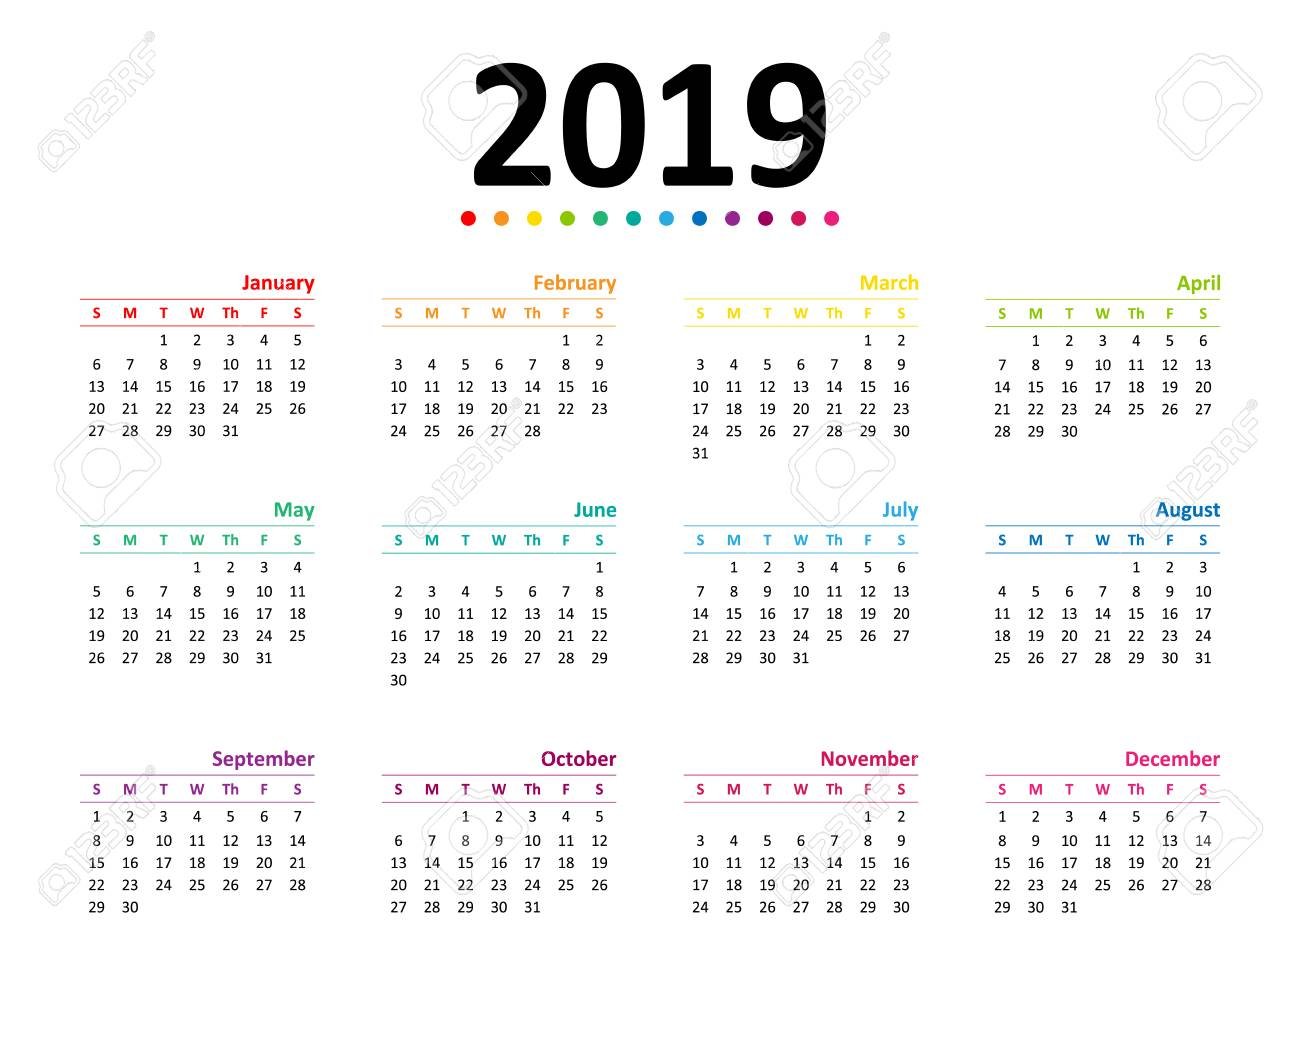 Calendar For The Year 2019 Year 2019 Calendar Wallpaper Royalty Free Cliparts, Vectors, And